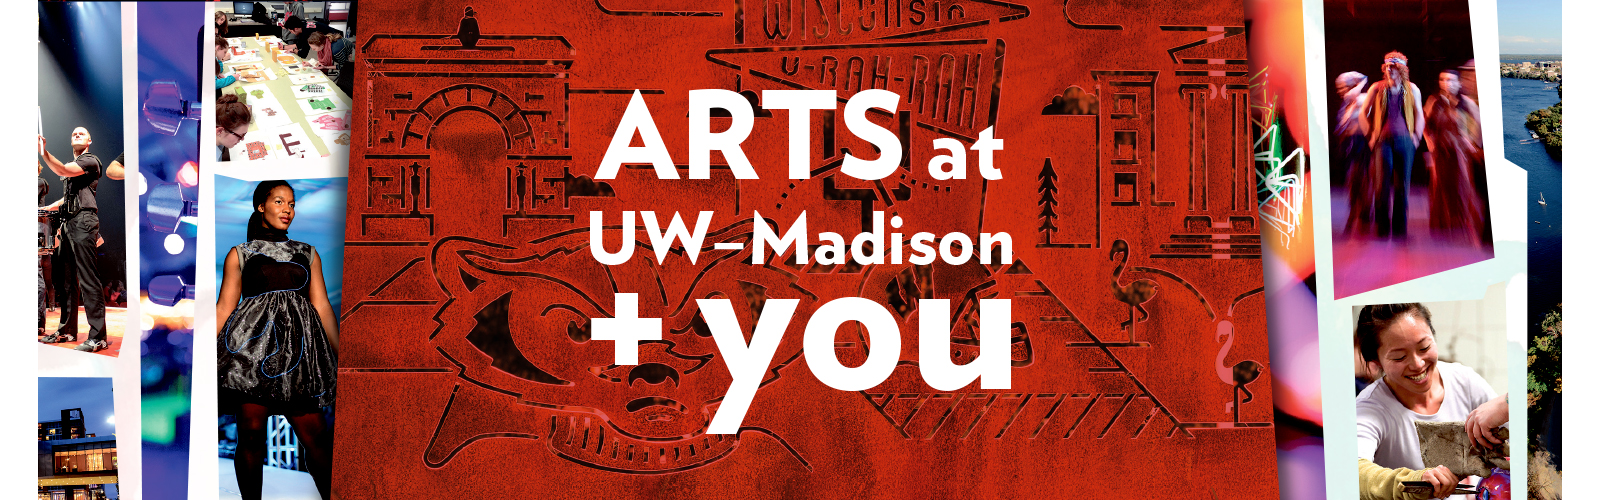 Arts at UW–Madison and you banner image